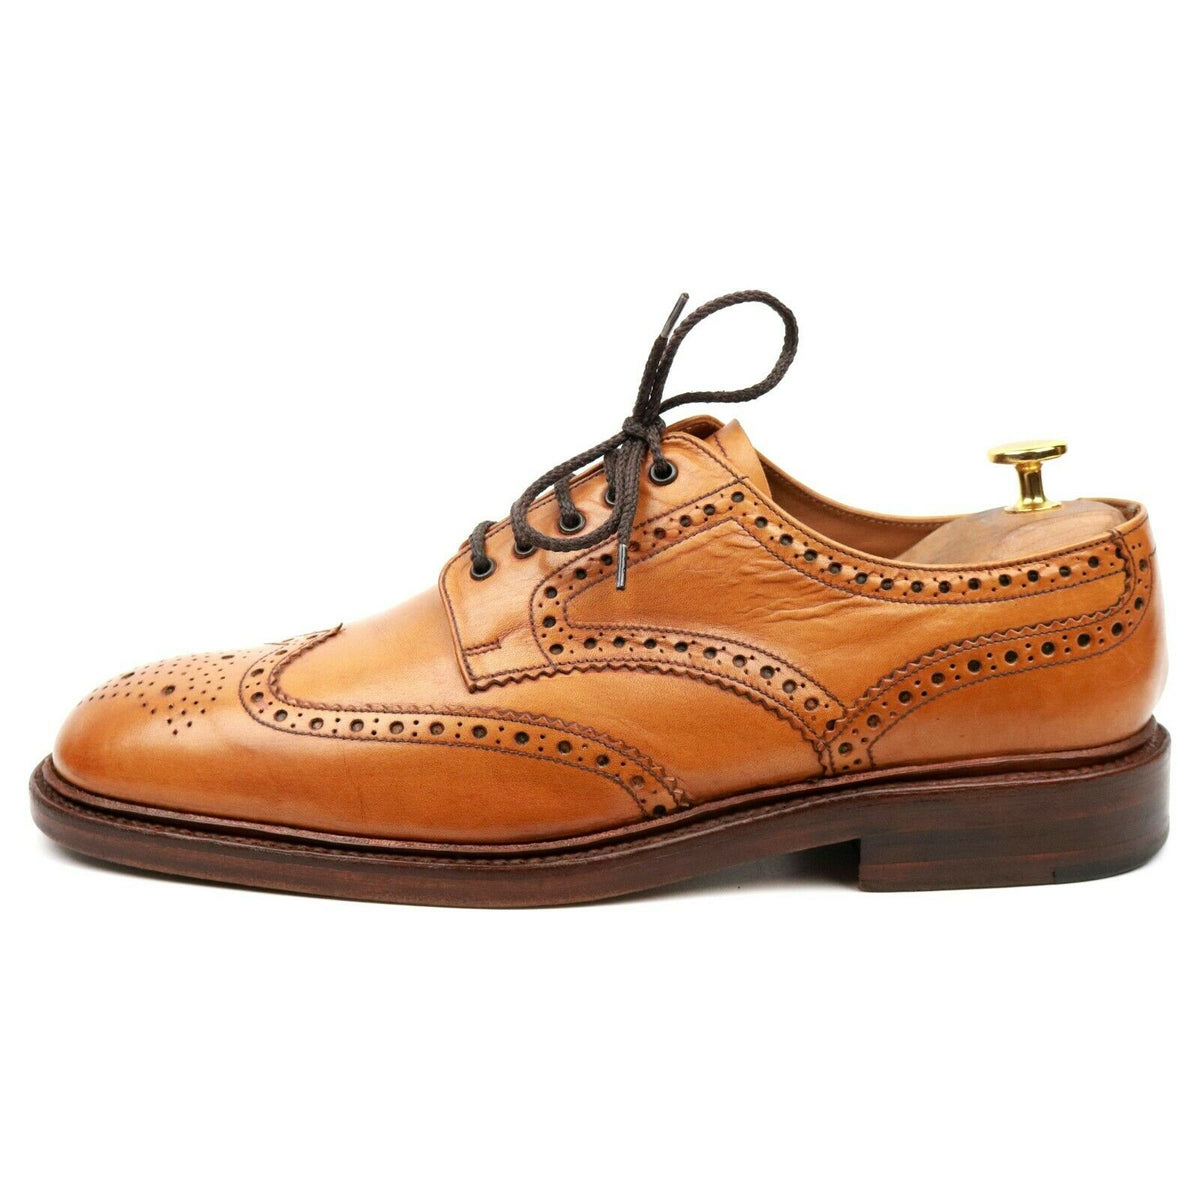 Loake 1880 'Chester' Tan Brown Leather Derby Brogues UK 9 F